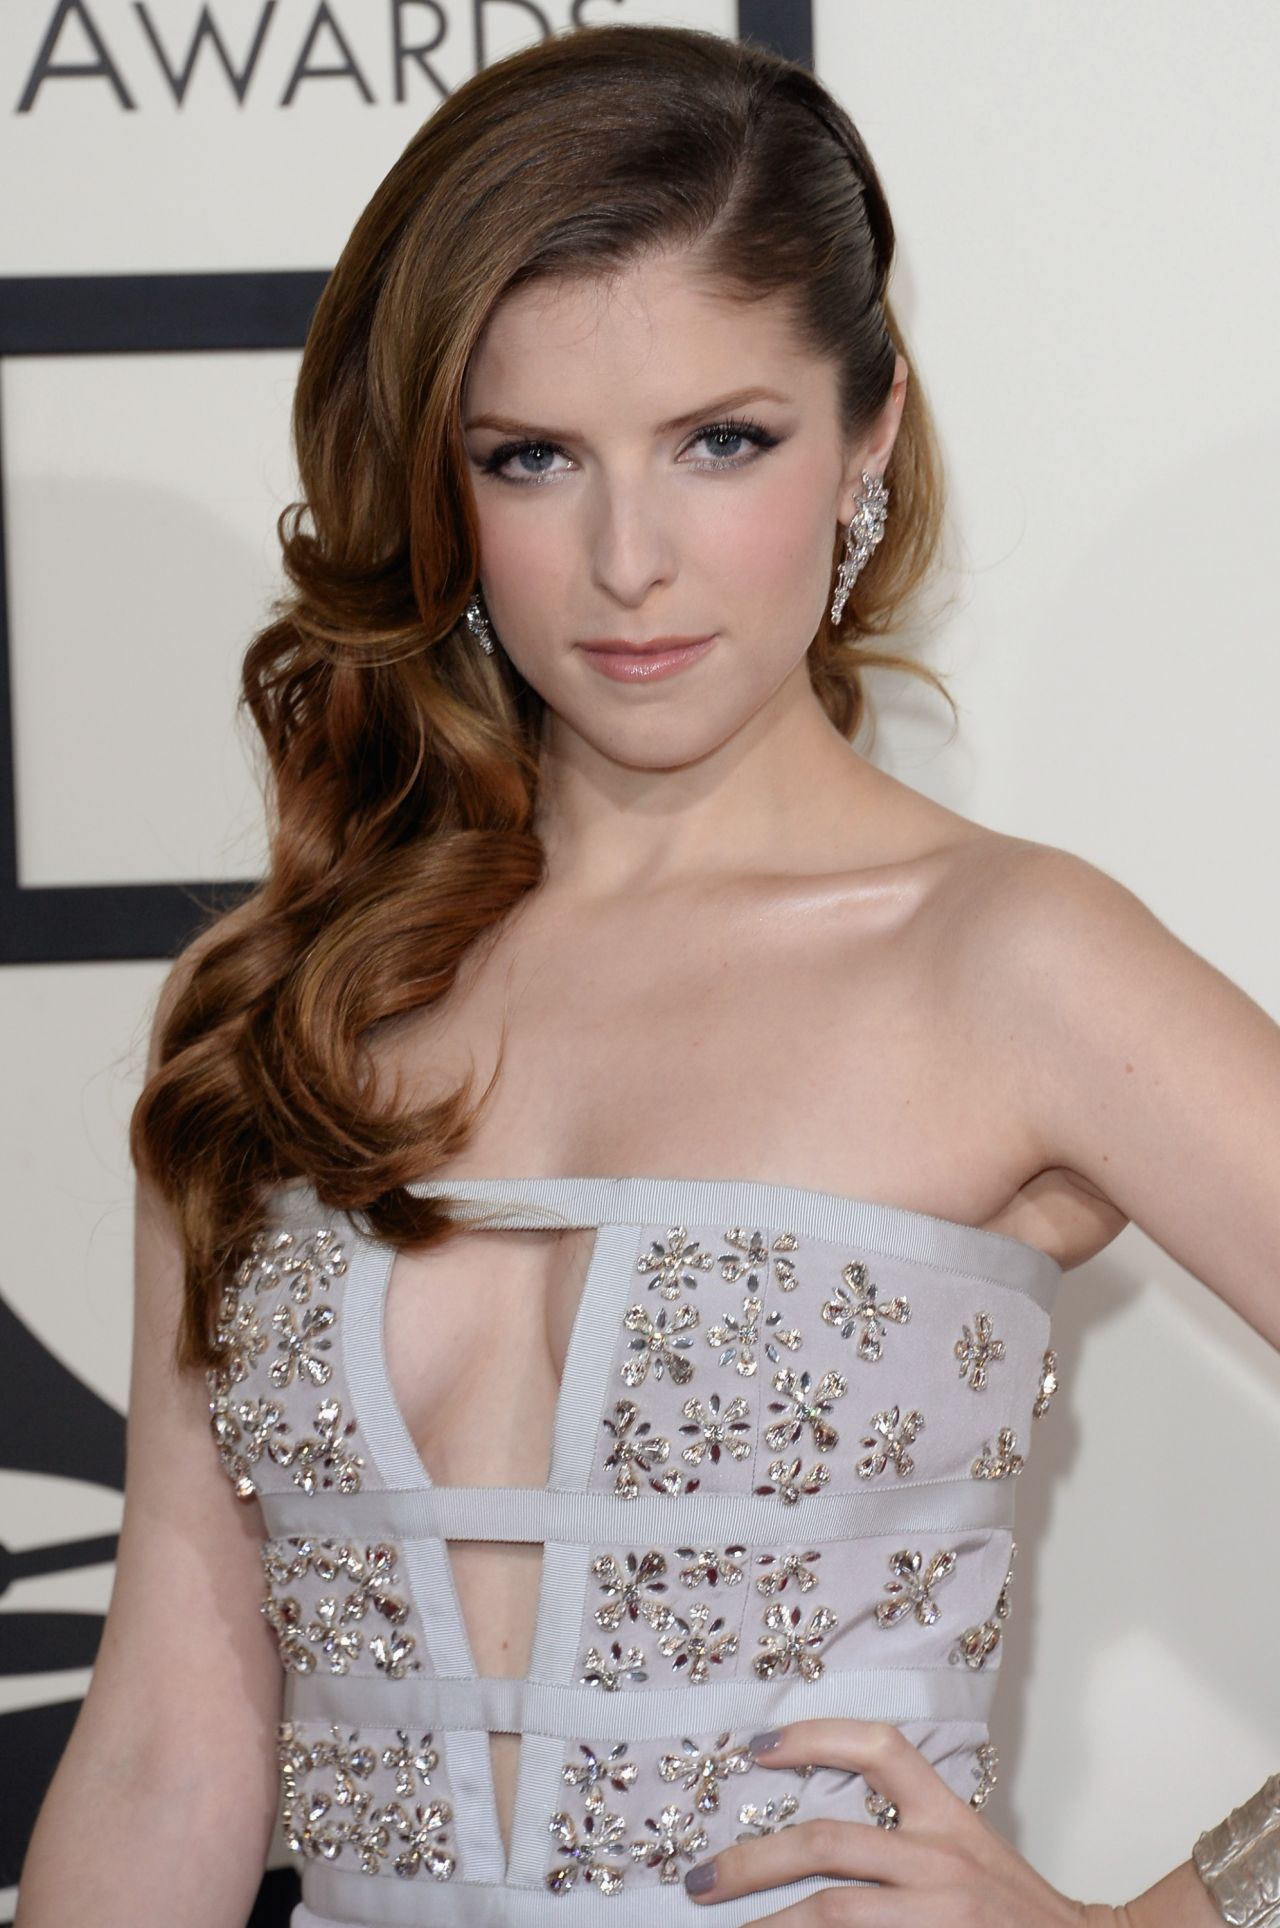 anna kendrick naked pictures